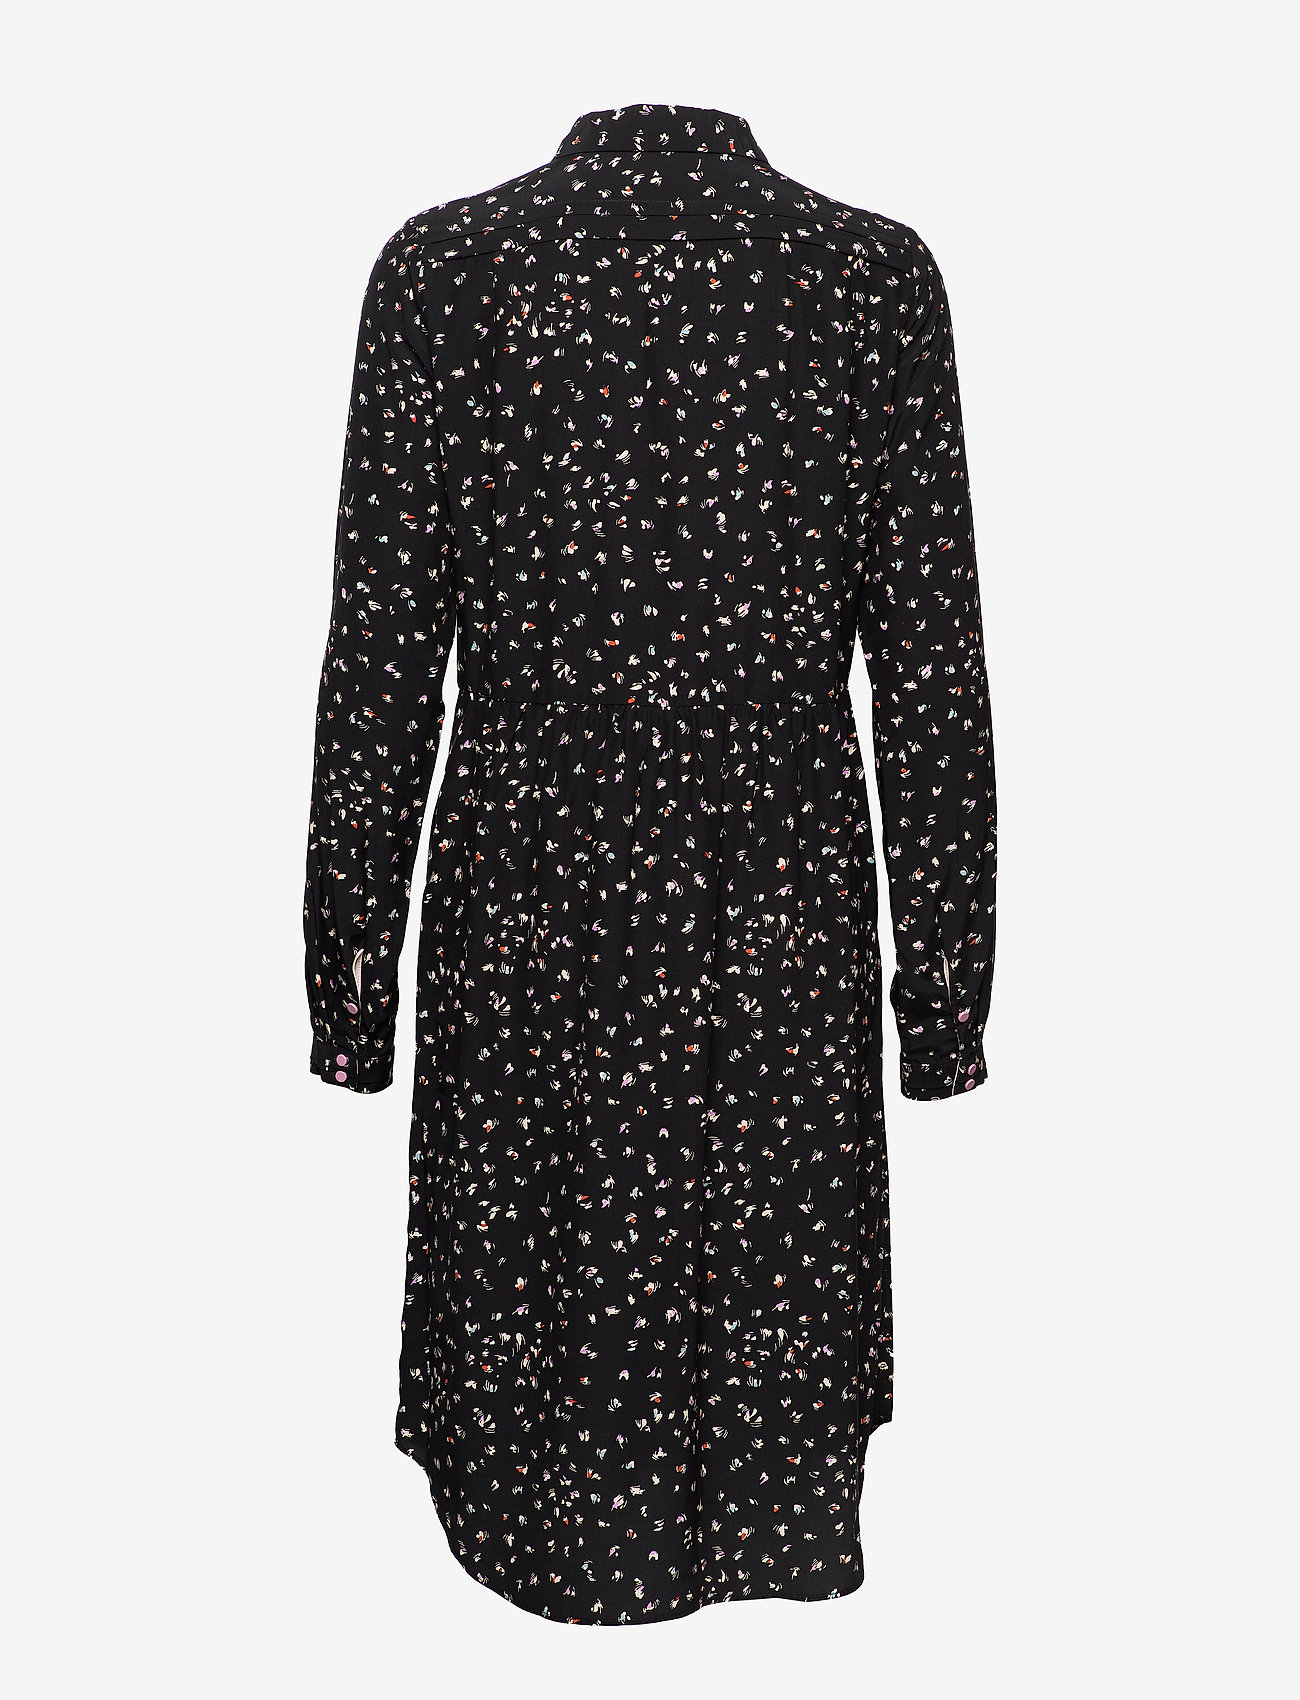 Noa Noa - Dress long sleeve - blousejurken - print black - 1